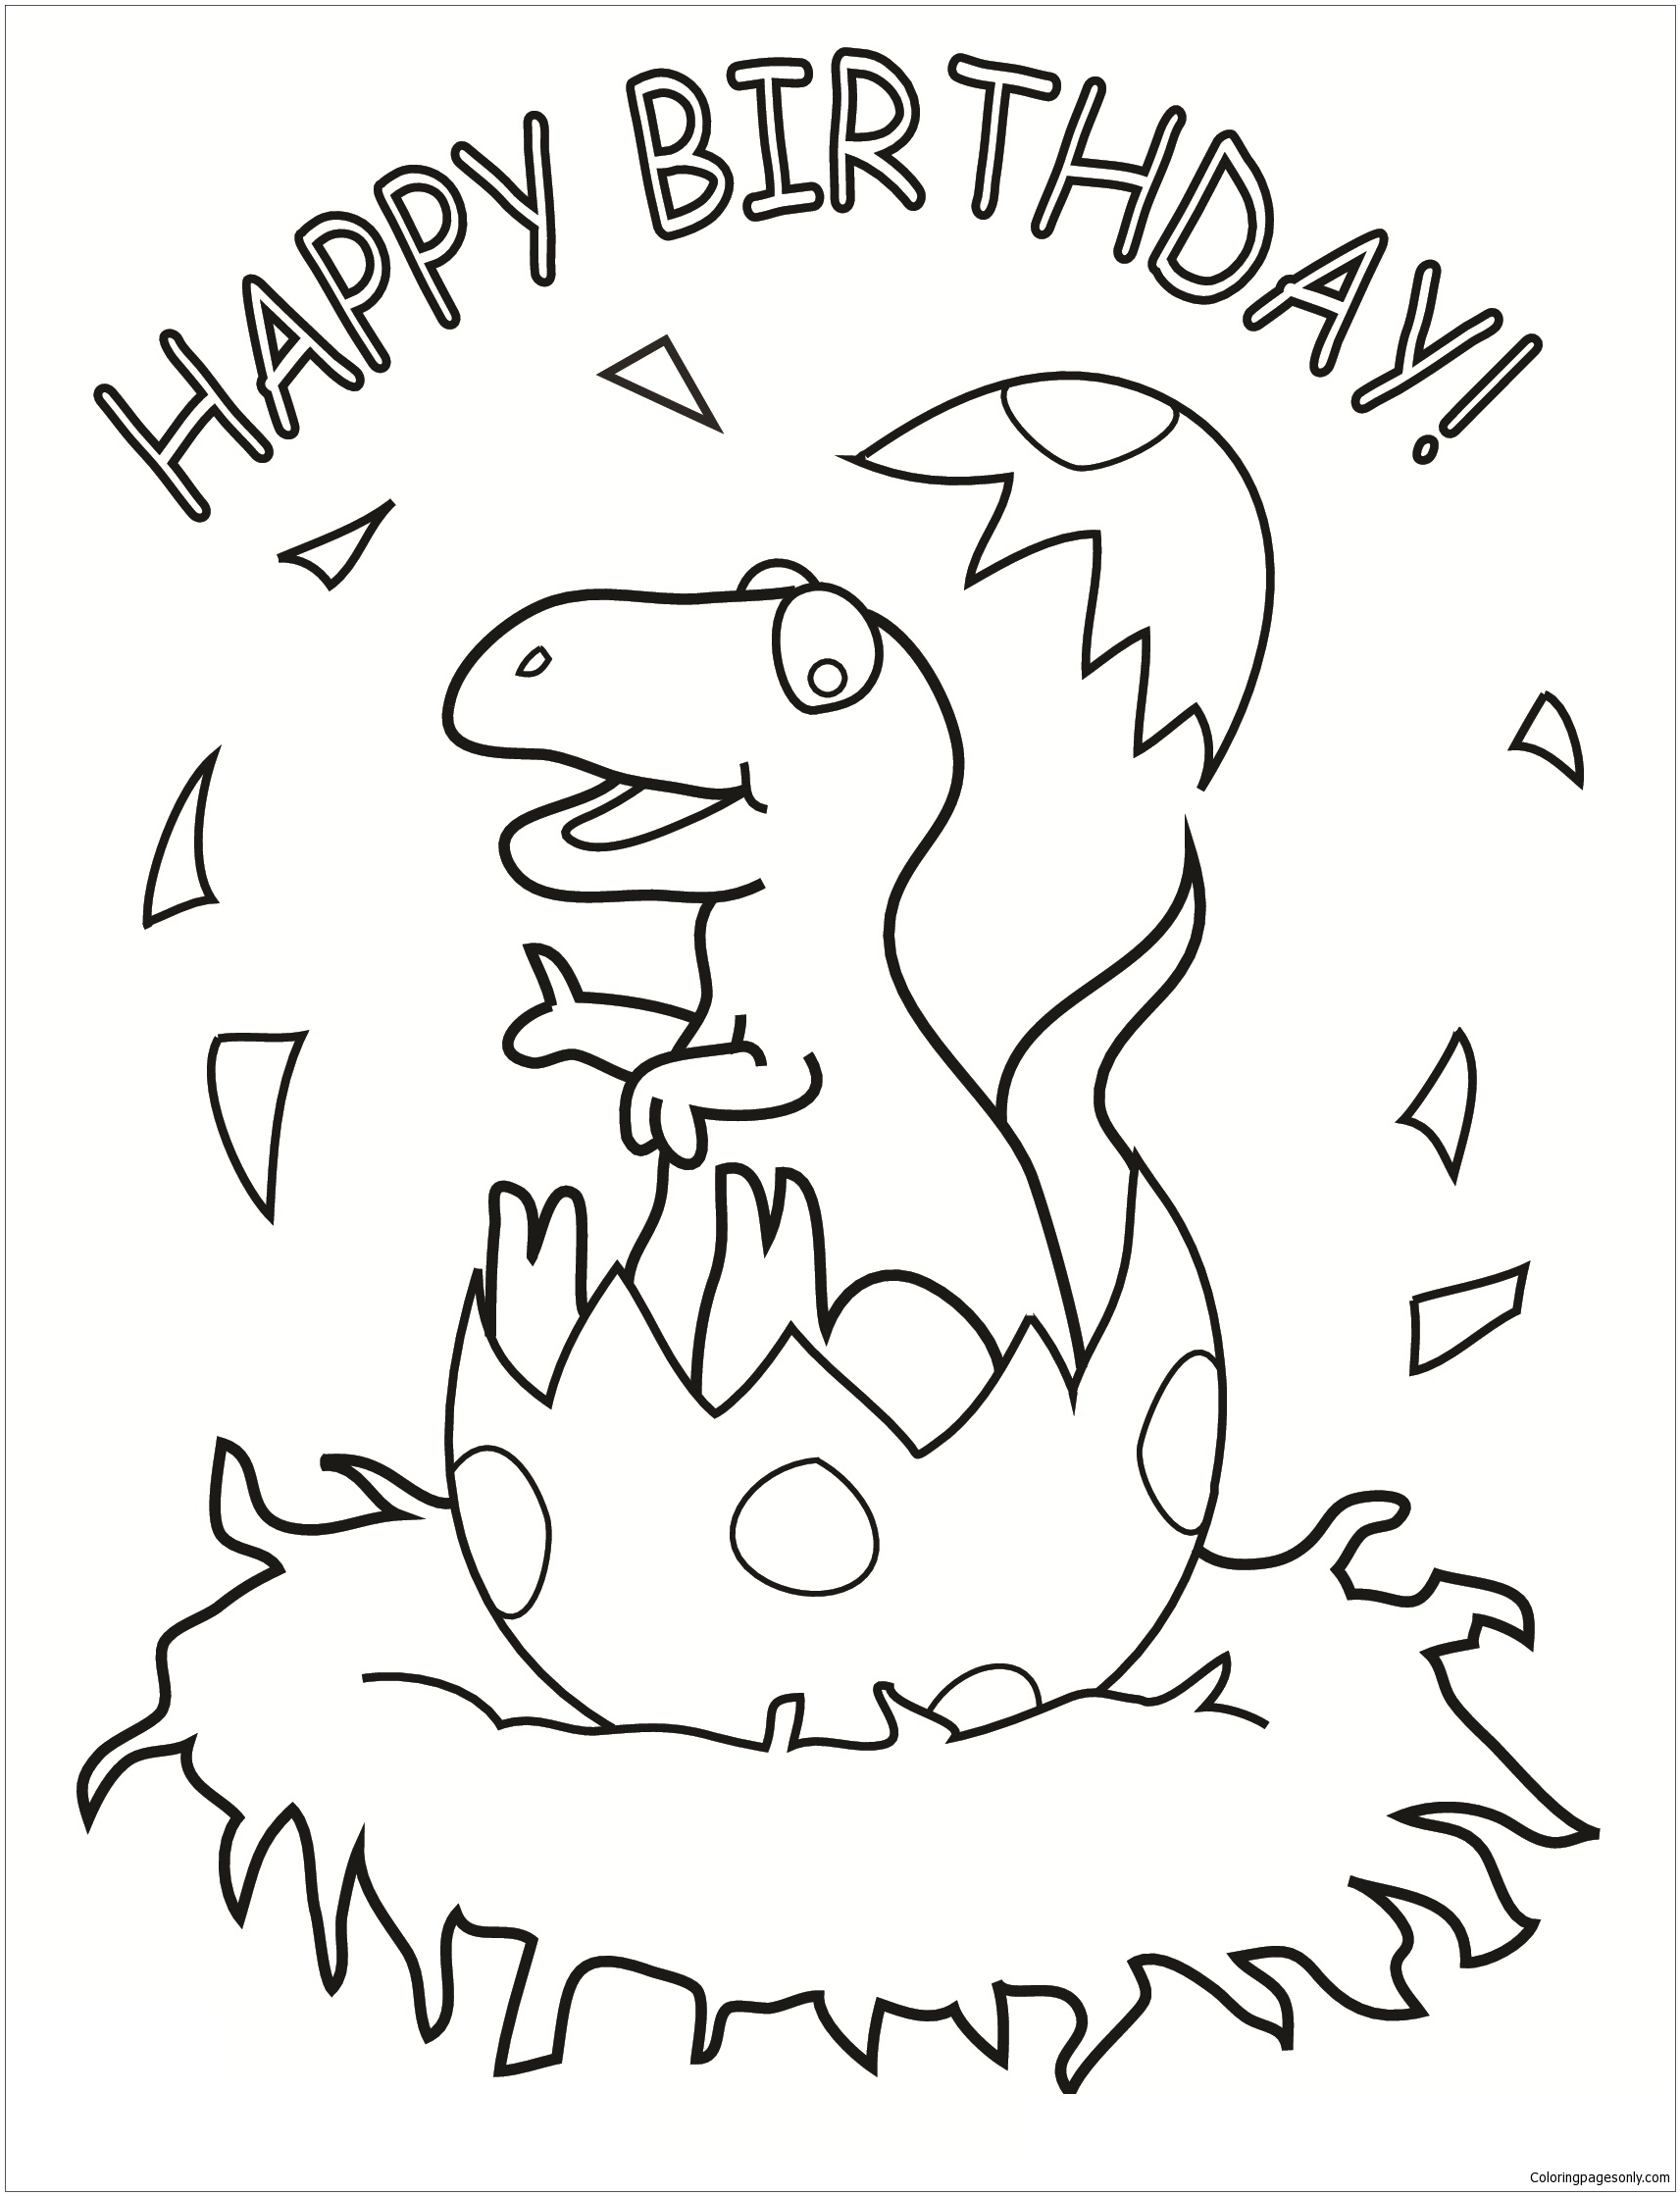 Happy Birthday Dinosaur Coloring Page Free Coloring Pages Online